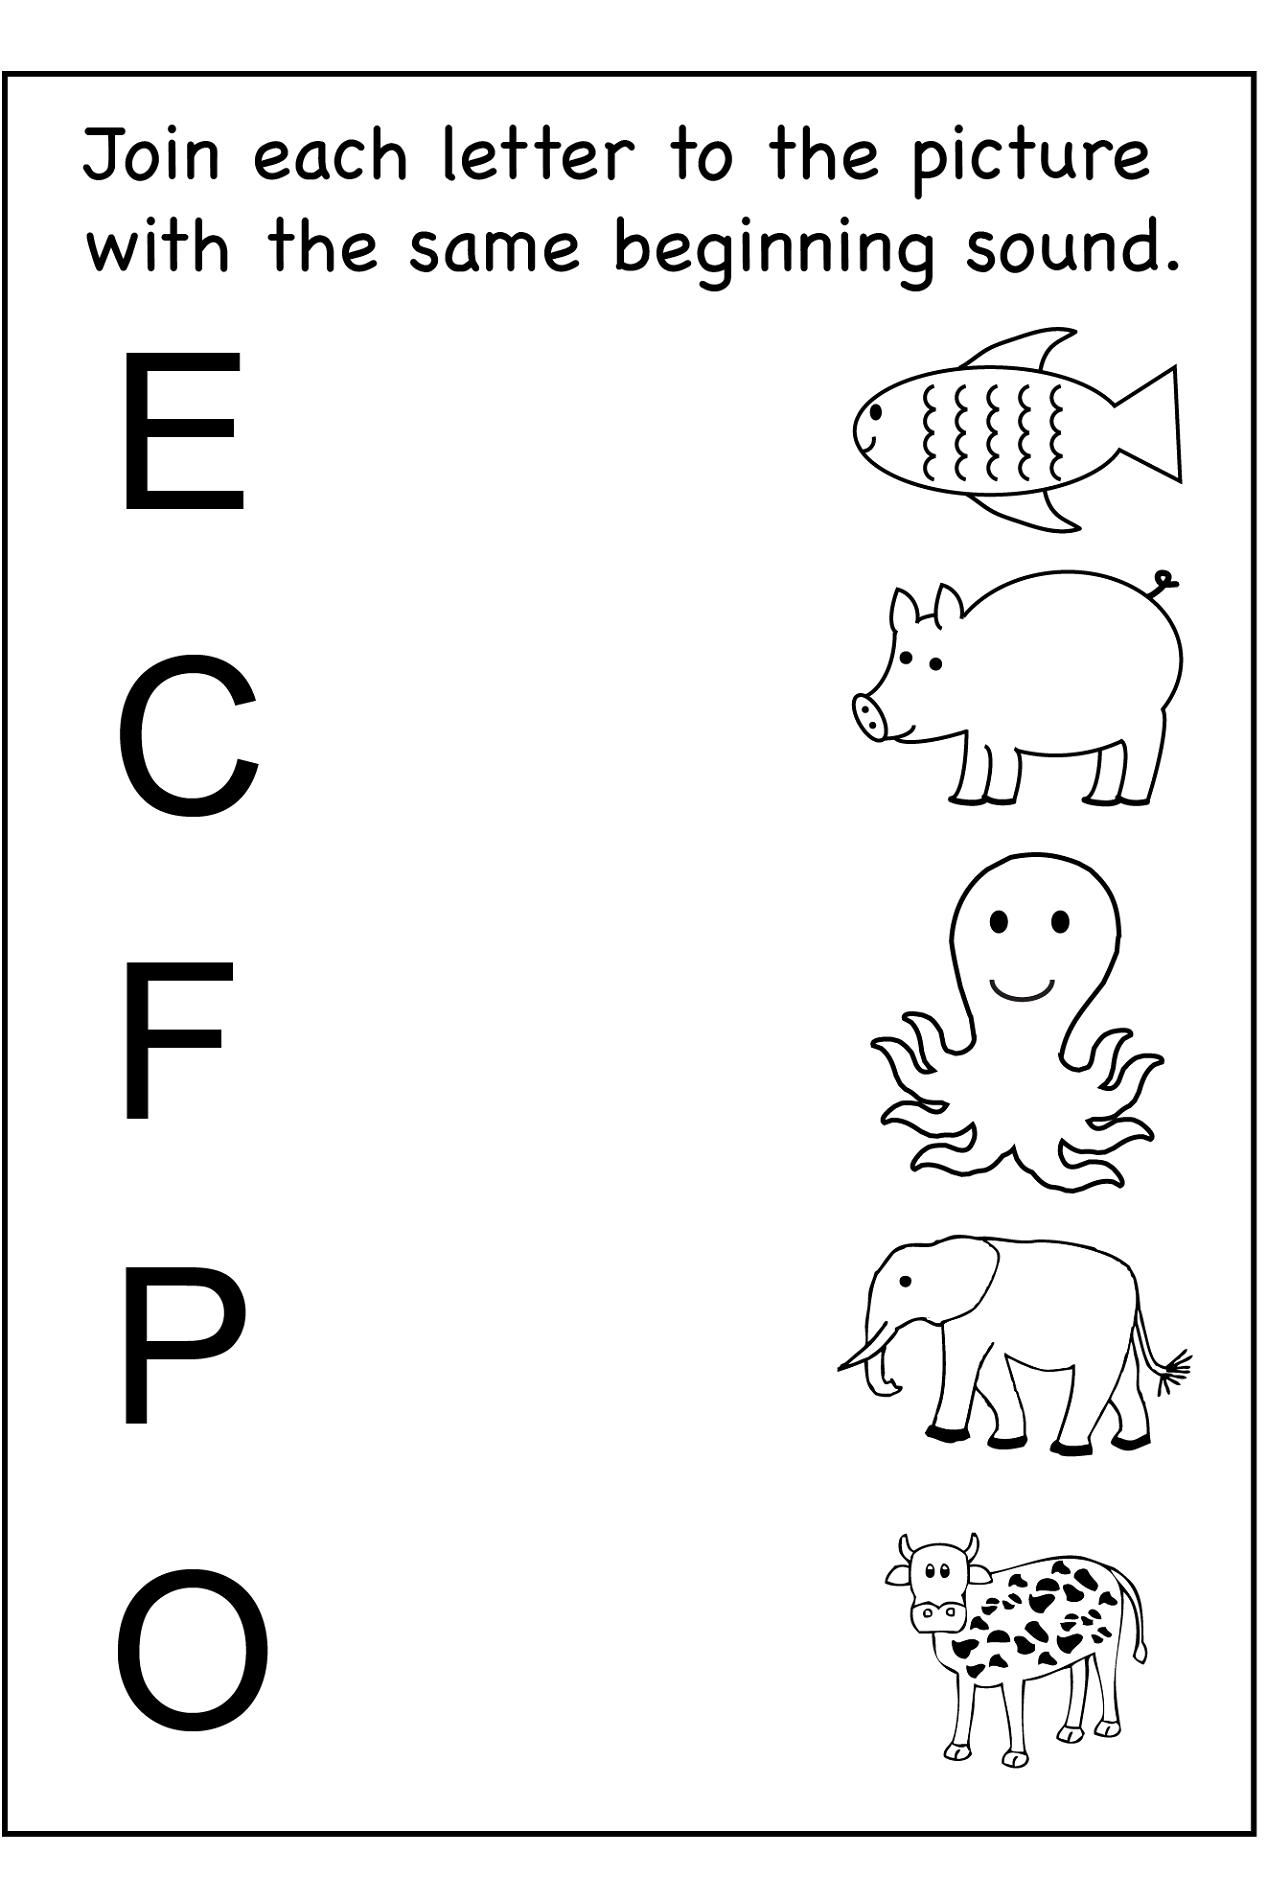 Printable Worksheets For Nursery In 2020 With Images Free